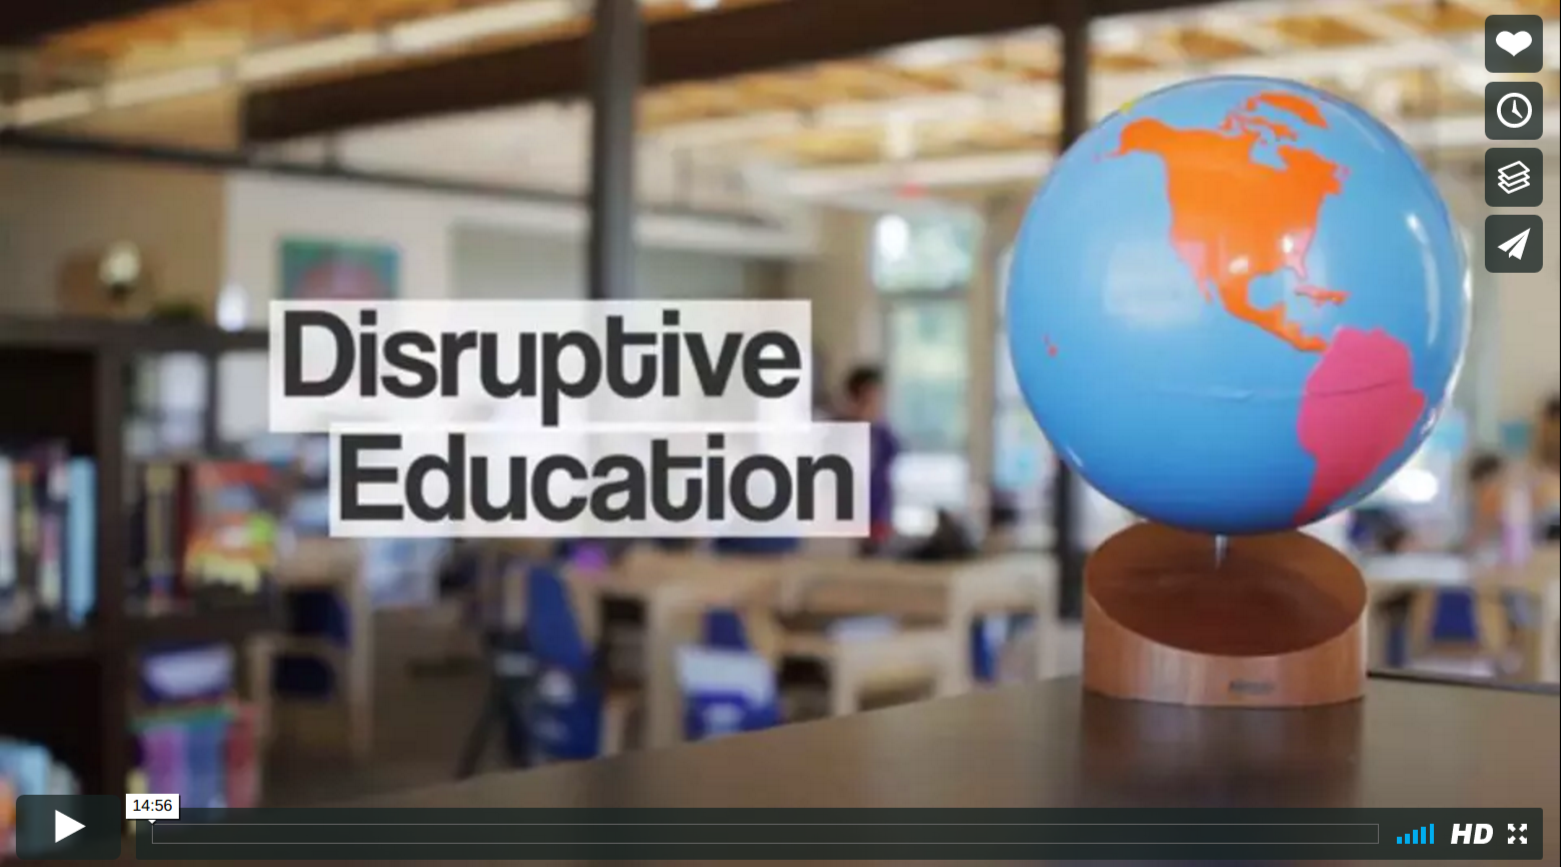 Disruptive Education